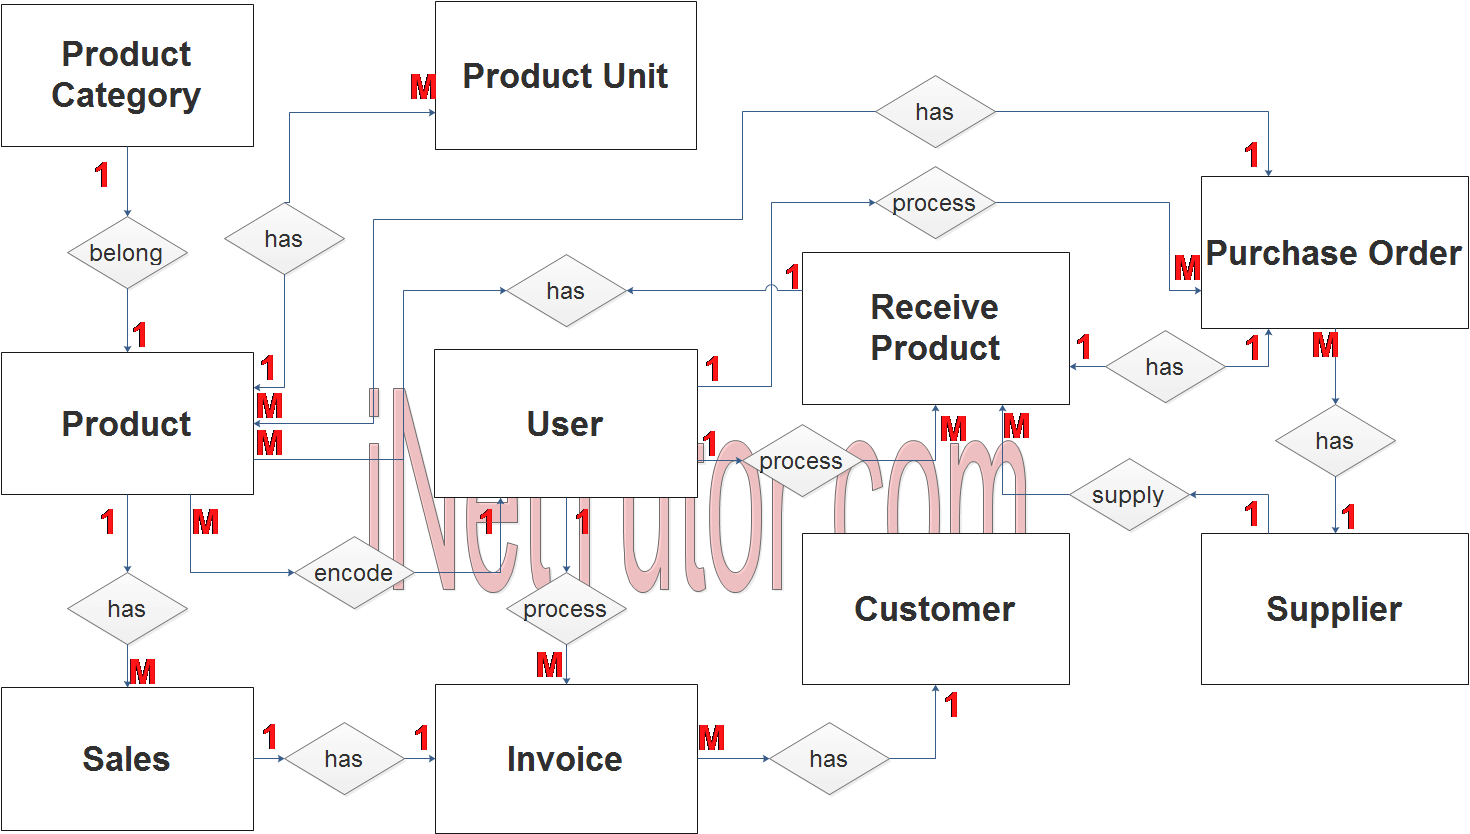 Point of Sale System ER Diagram - Step 2 Table Relationship